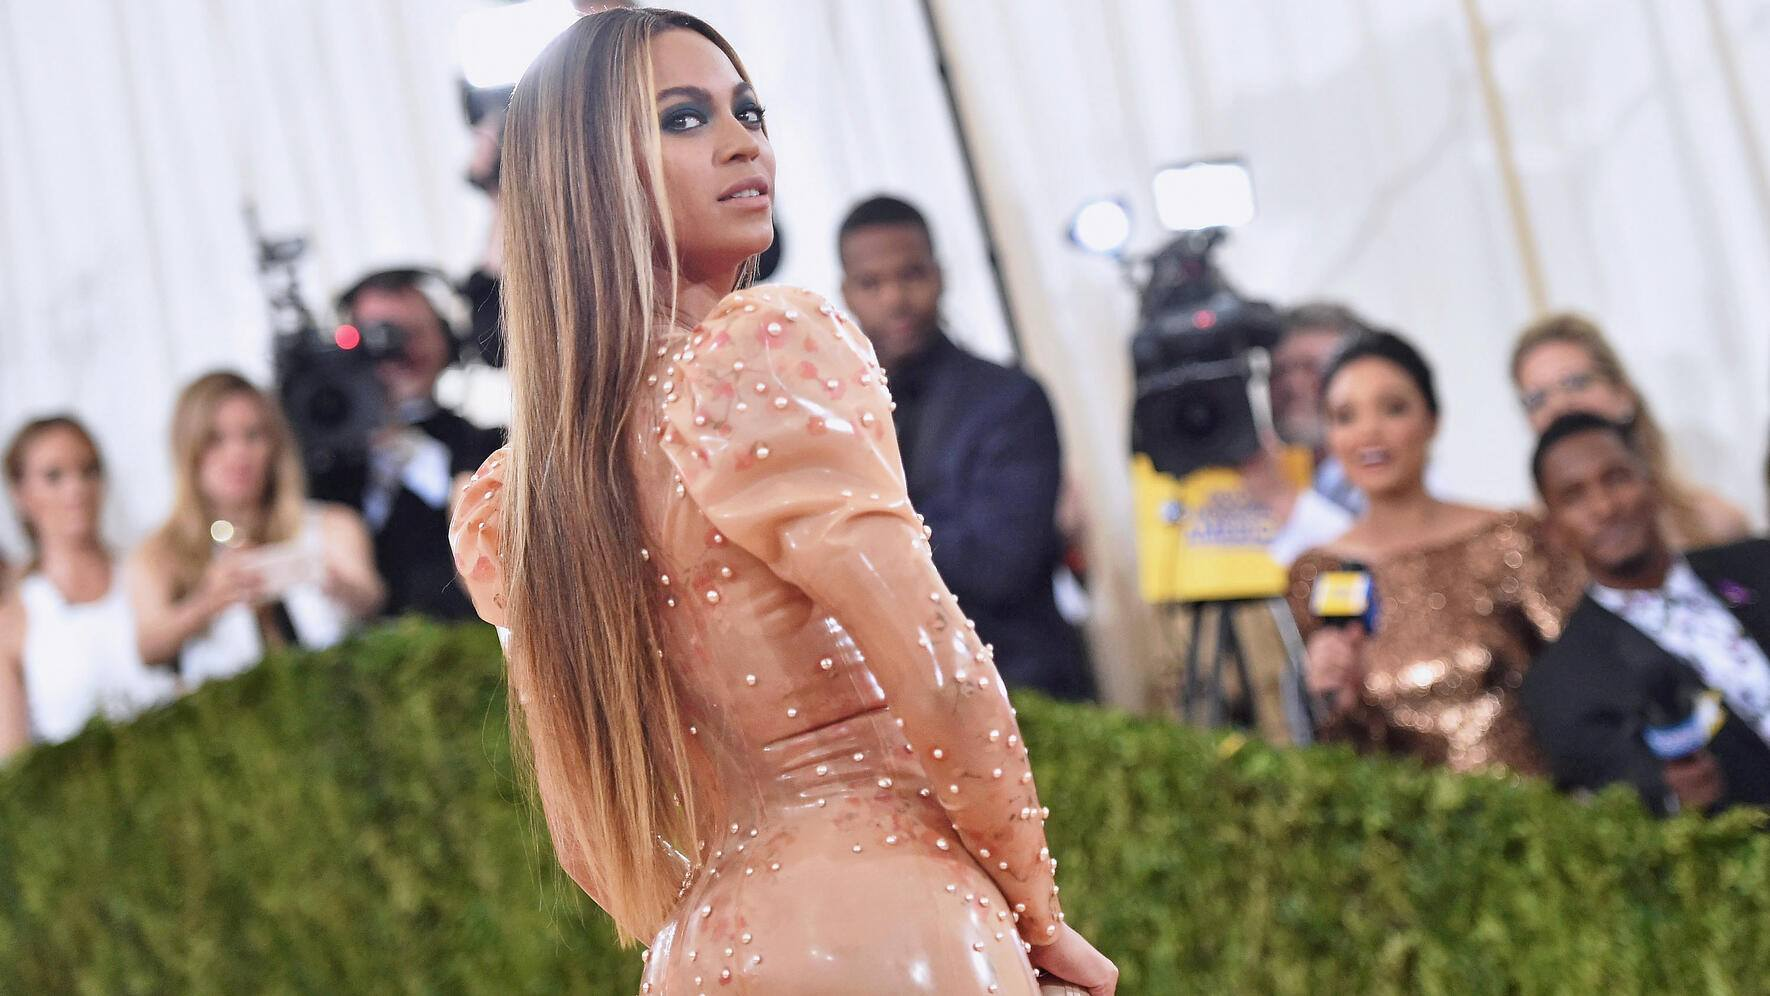 """NEW YORK, NY - MAY 02:  Beyonce attends the """"Manus x Machina: Fashion In An Age Of Technology"""" Costume Institute Gala at Metropolitan Museum of Art on May 2, 2016 in New York City.  (Photo by Mike Coppola/Getty Images for People.com)"""